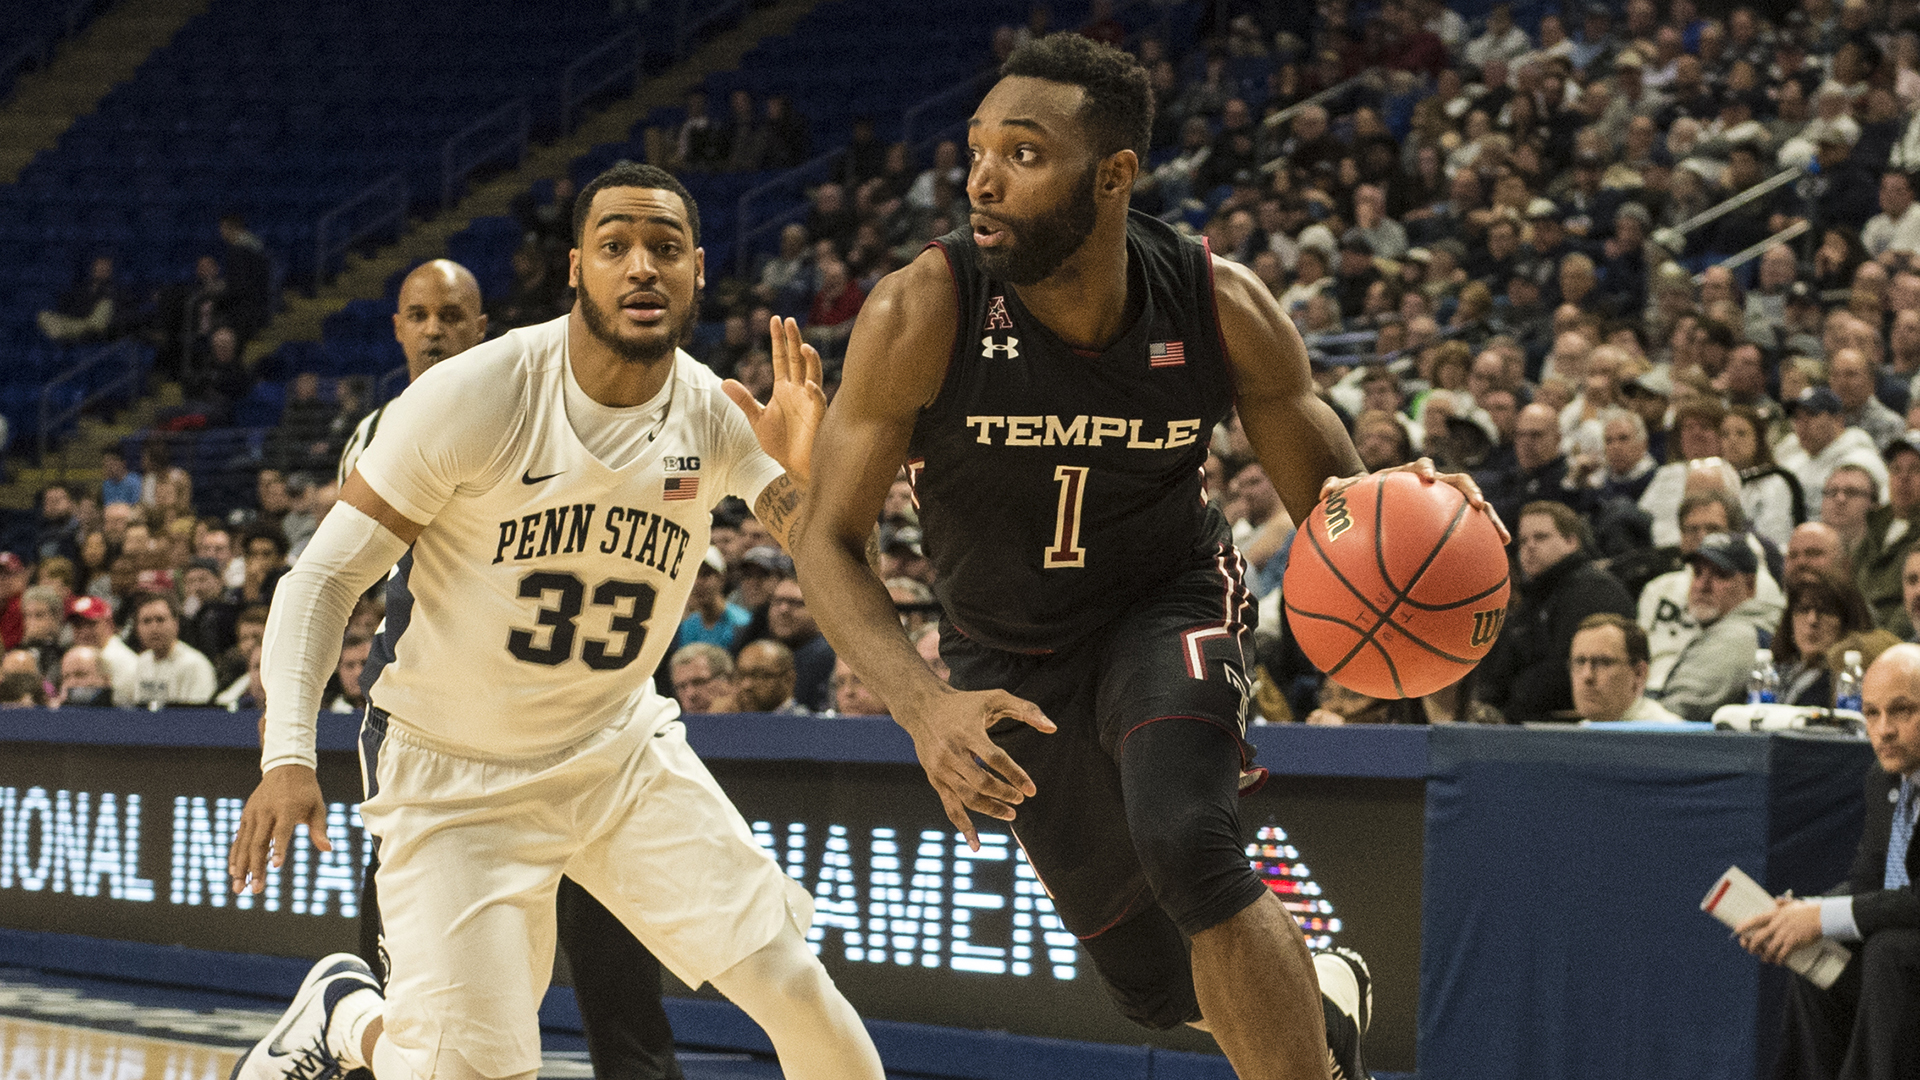 late run lifts penn state over temple in nit first round, 63-57